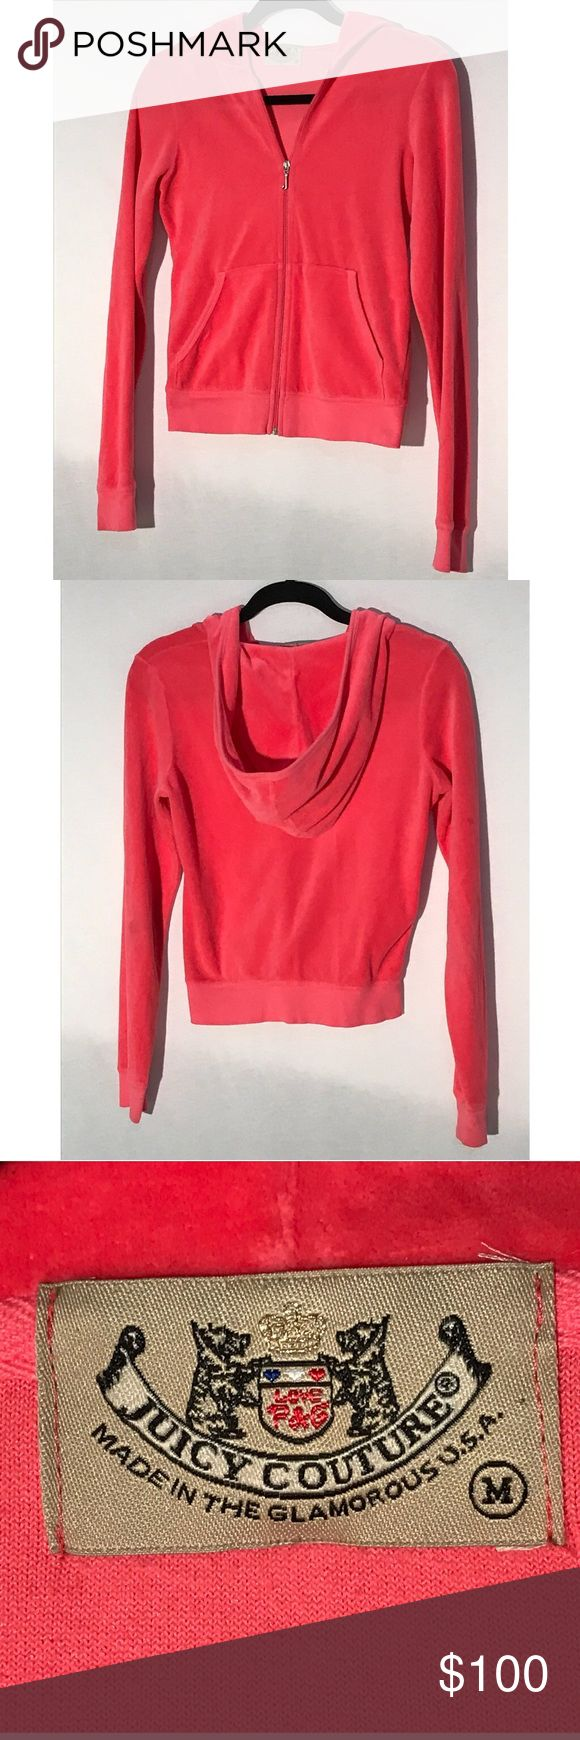 Hot Pink J Bling Velour Juicy Couture Jacket Near perfect condition, hot pink J Bling Velour Juicy Couture track suit jacket. Very soft, velour material. Says Medium, fits like a small. Color is more true to pictures than to website picture. Juicy Couture Tops Sweatshirts & Hoodies